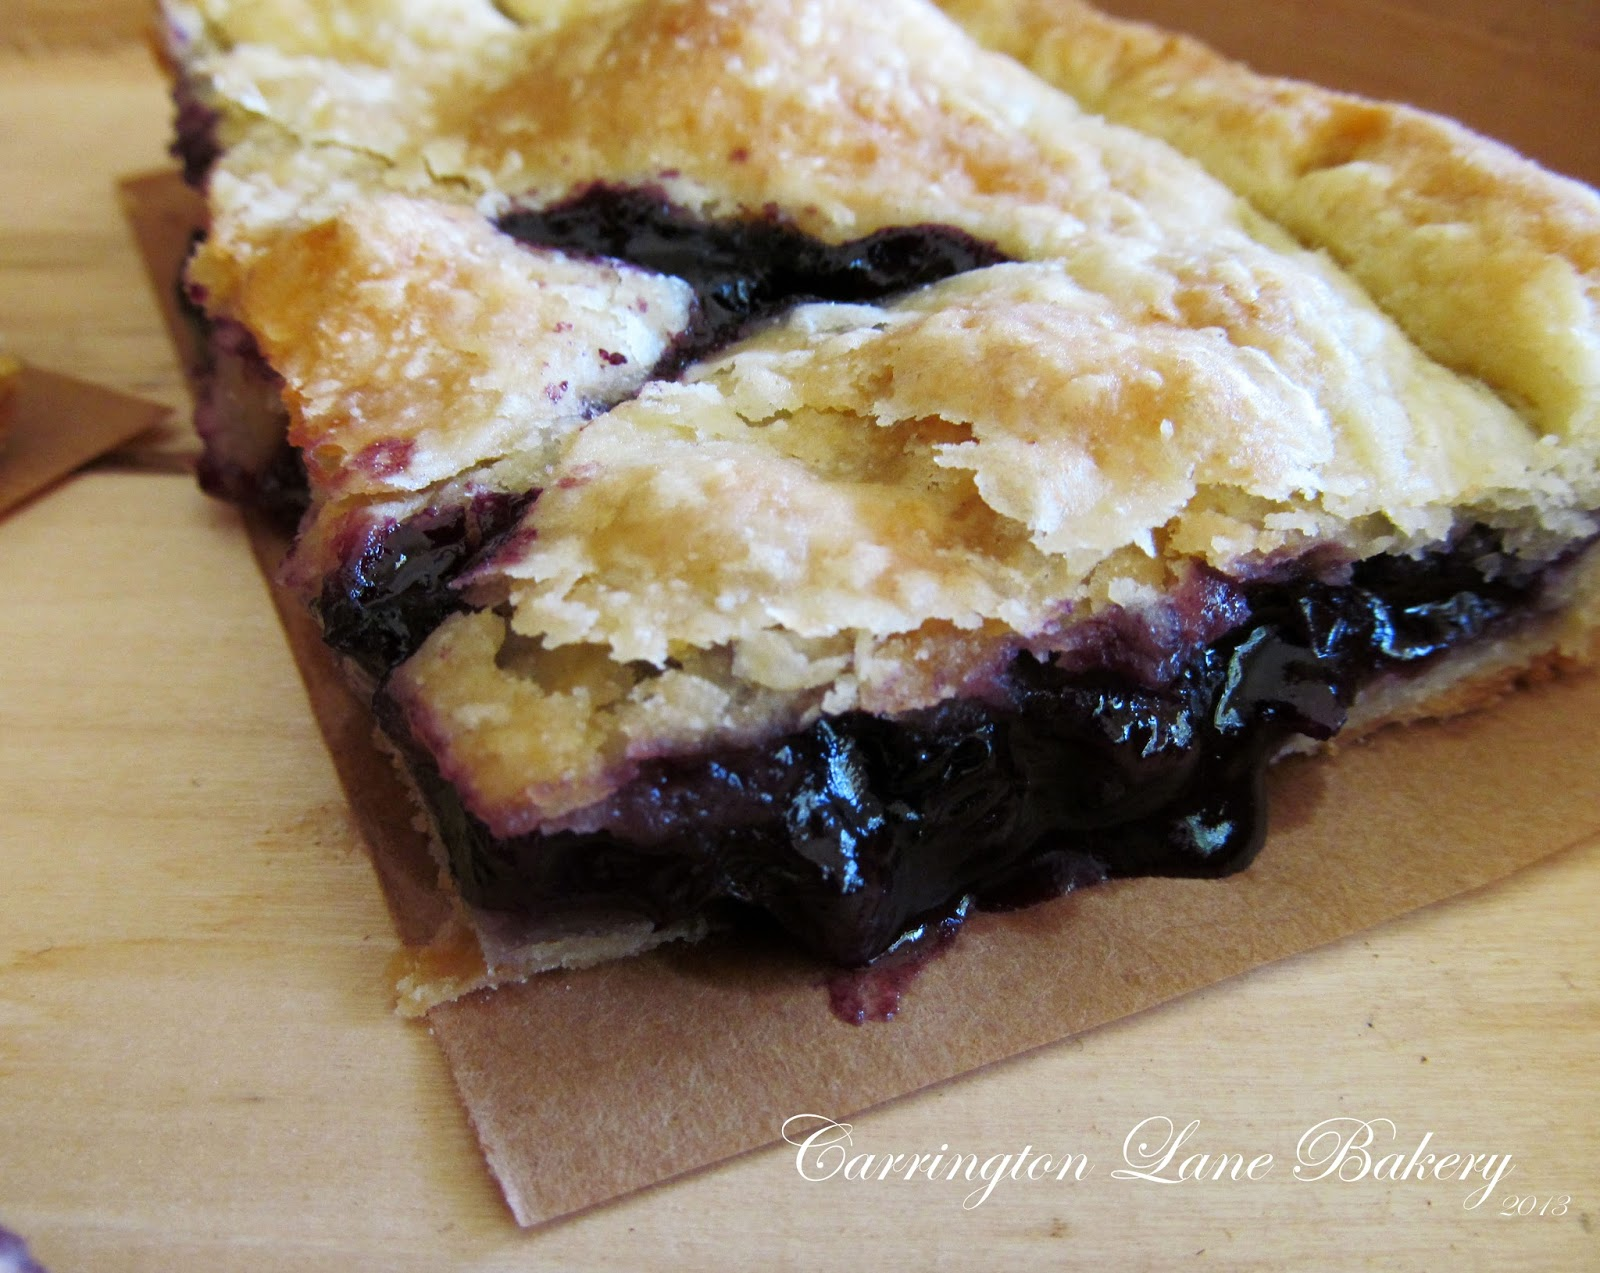 Carrington Lane Bakery: Blueberry Apple Slab Pie